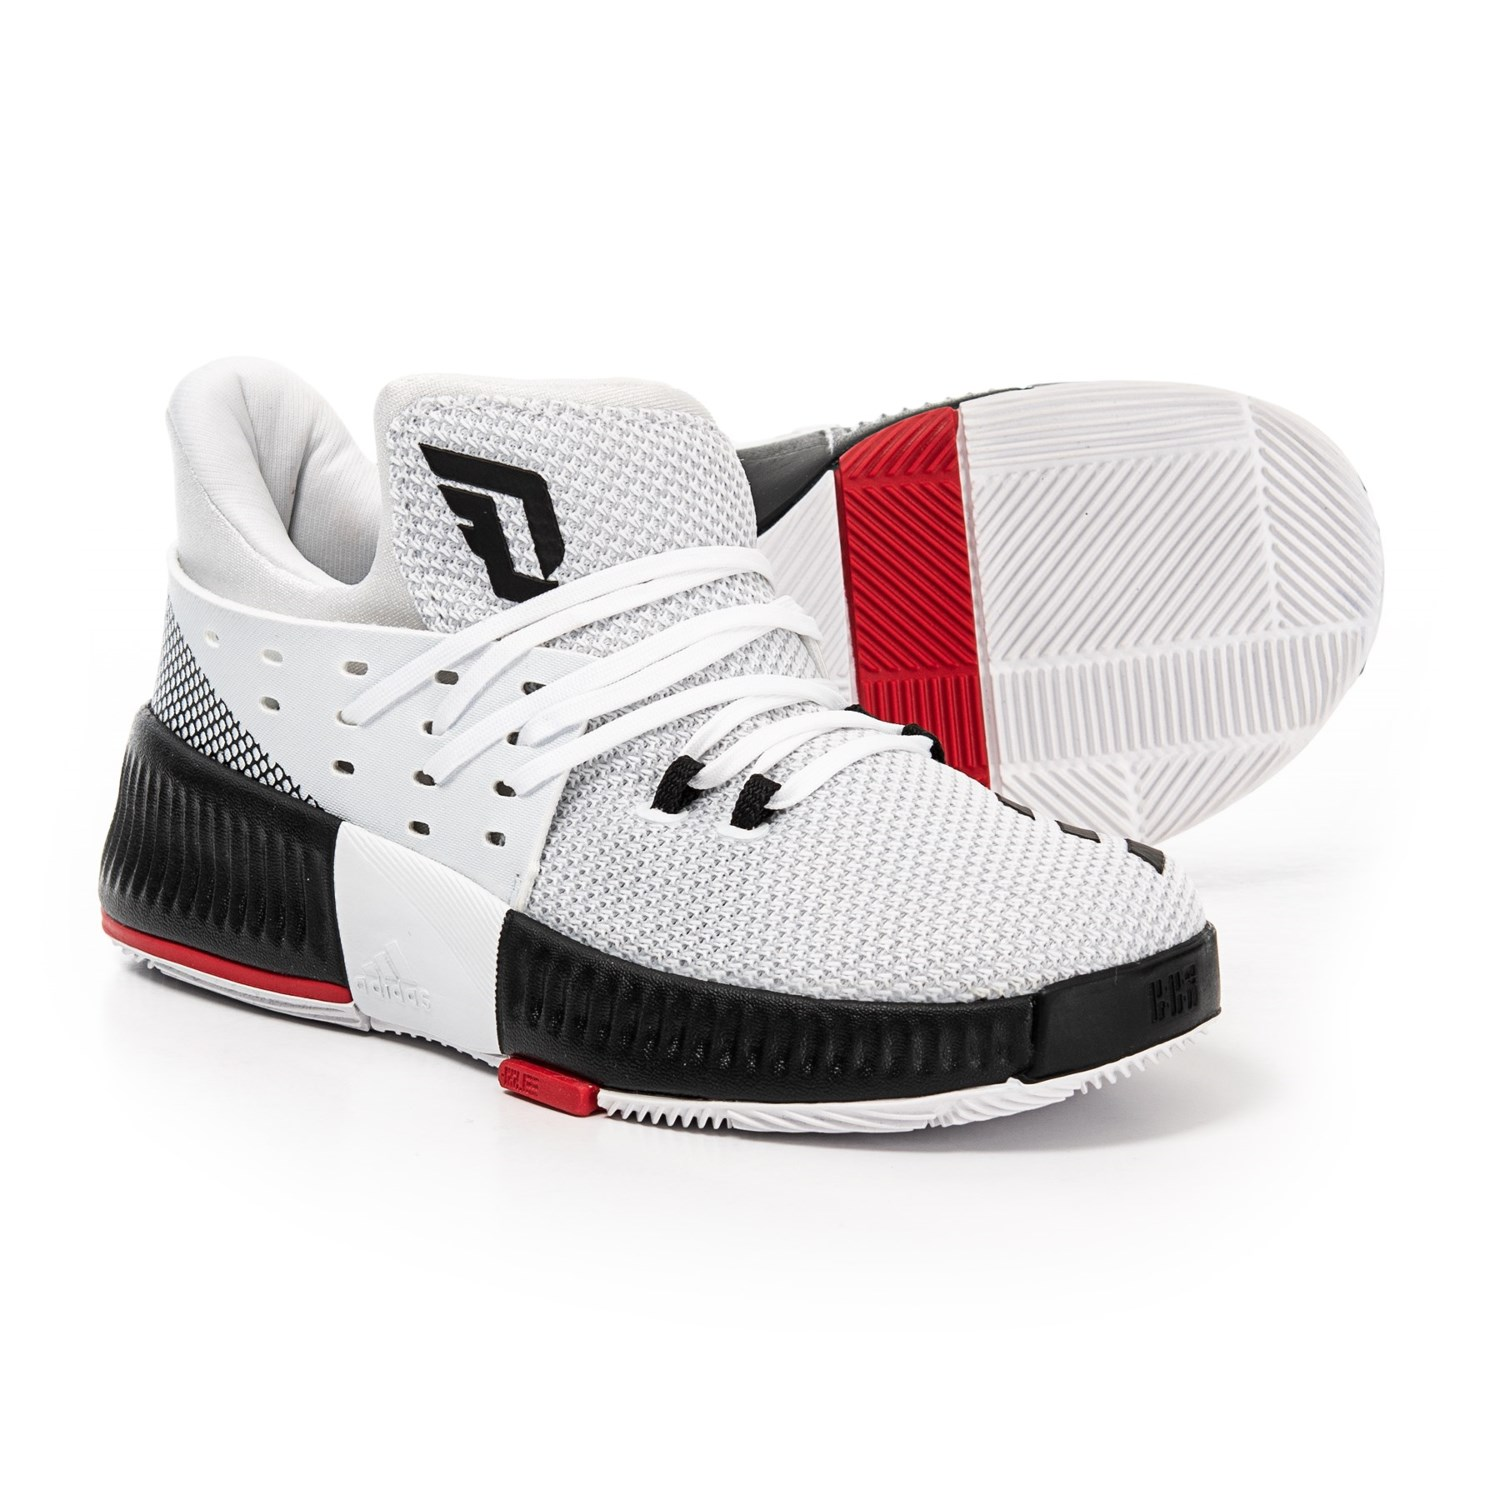 e1a2d63f3d65 adidas Damian Lillard 3 Basketball Shoes (For Little and Big Kids) in  Footwear White